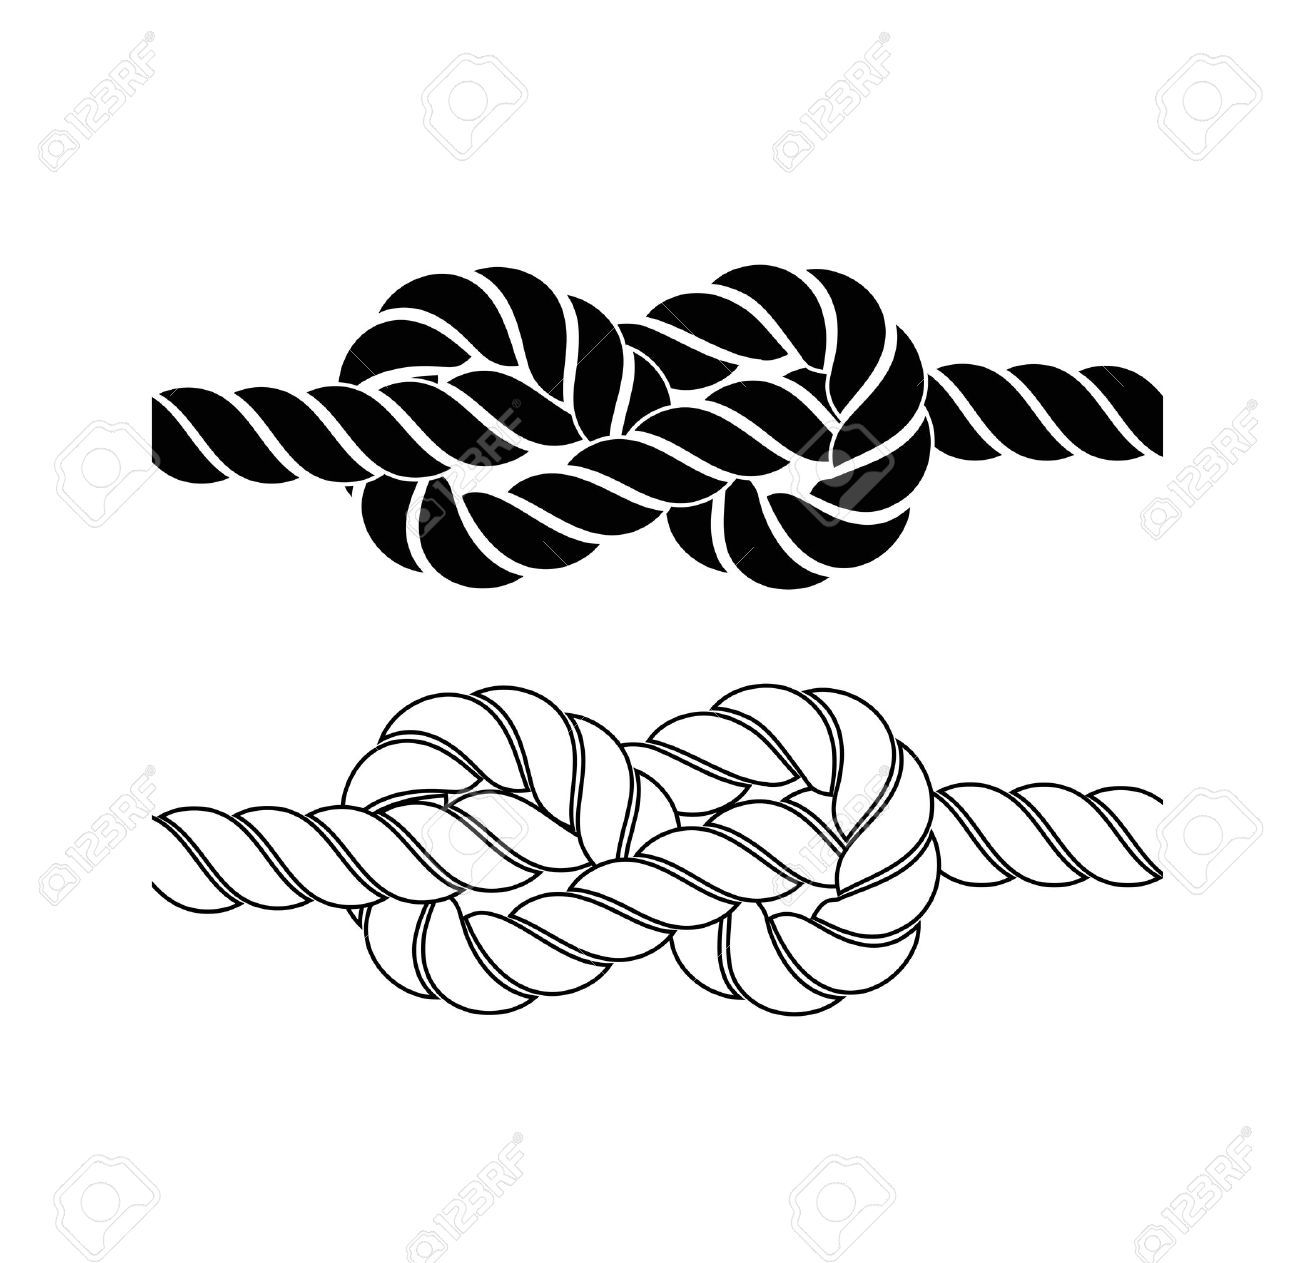 Knotted rope clipart graphic royalty free Knotted rope clipart 4 » Clipart Portal graphic royalty free